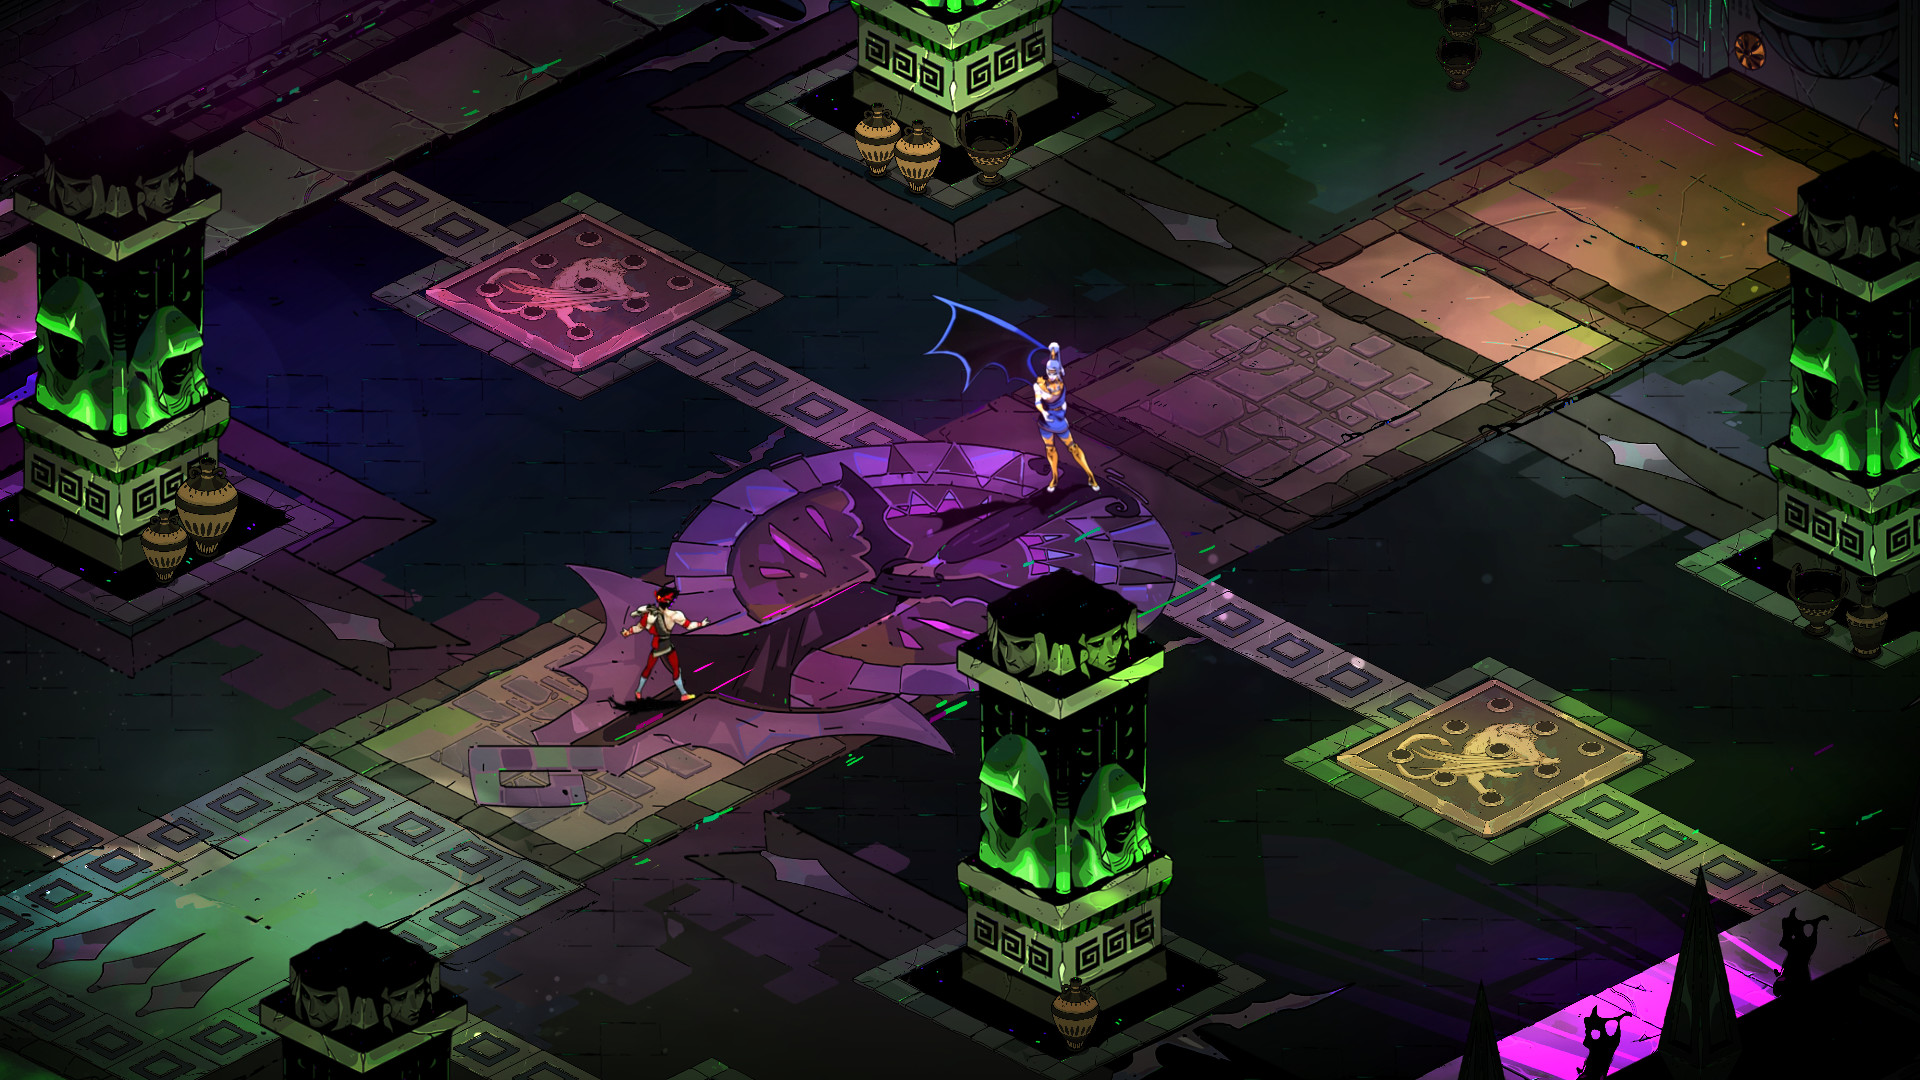 Zagreus faces off against one of the many enemies stationed throughout Hades.